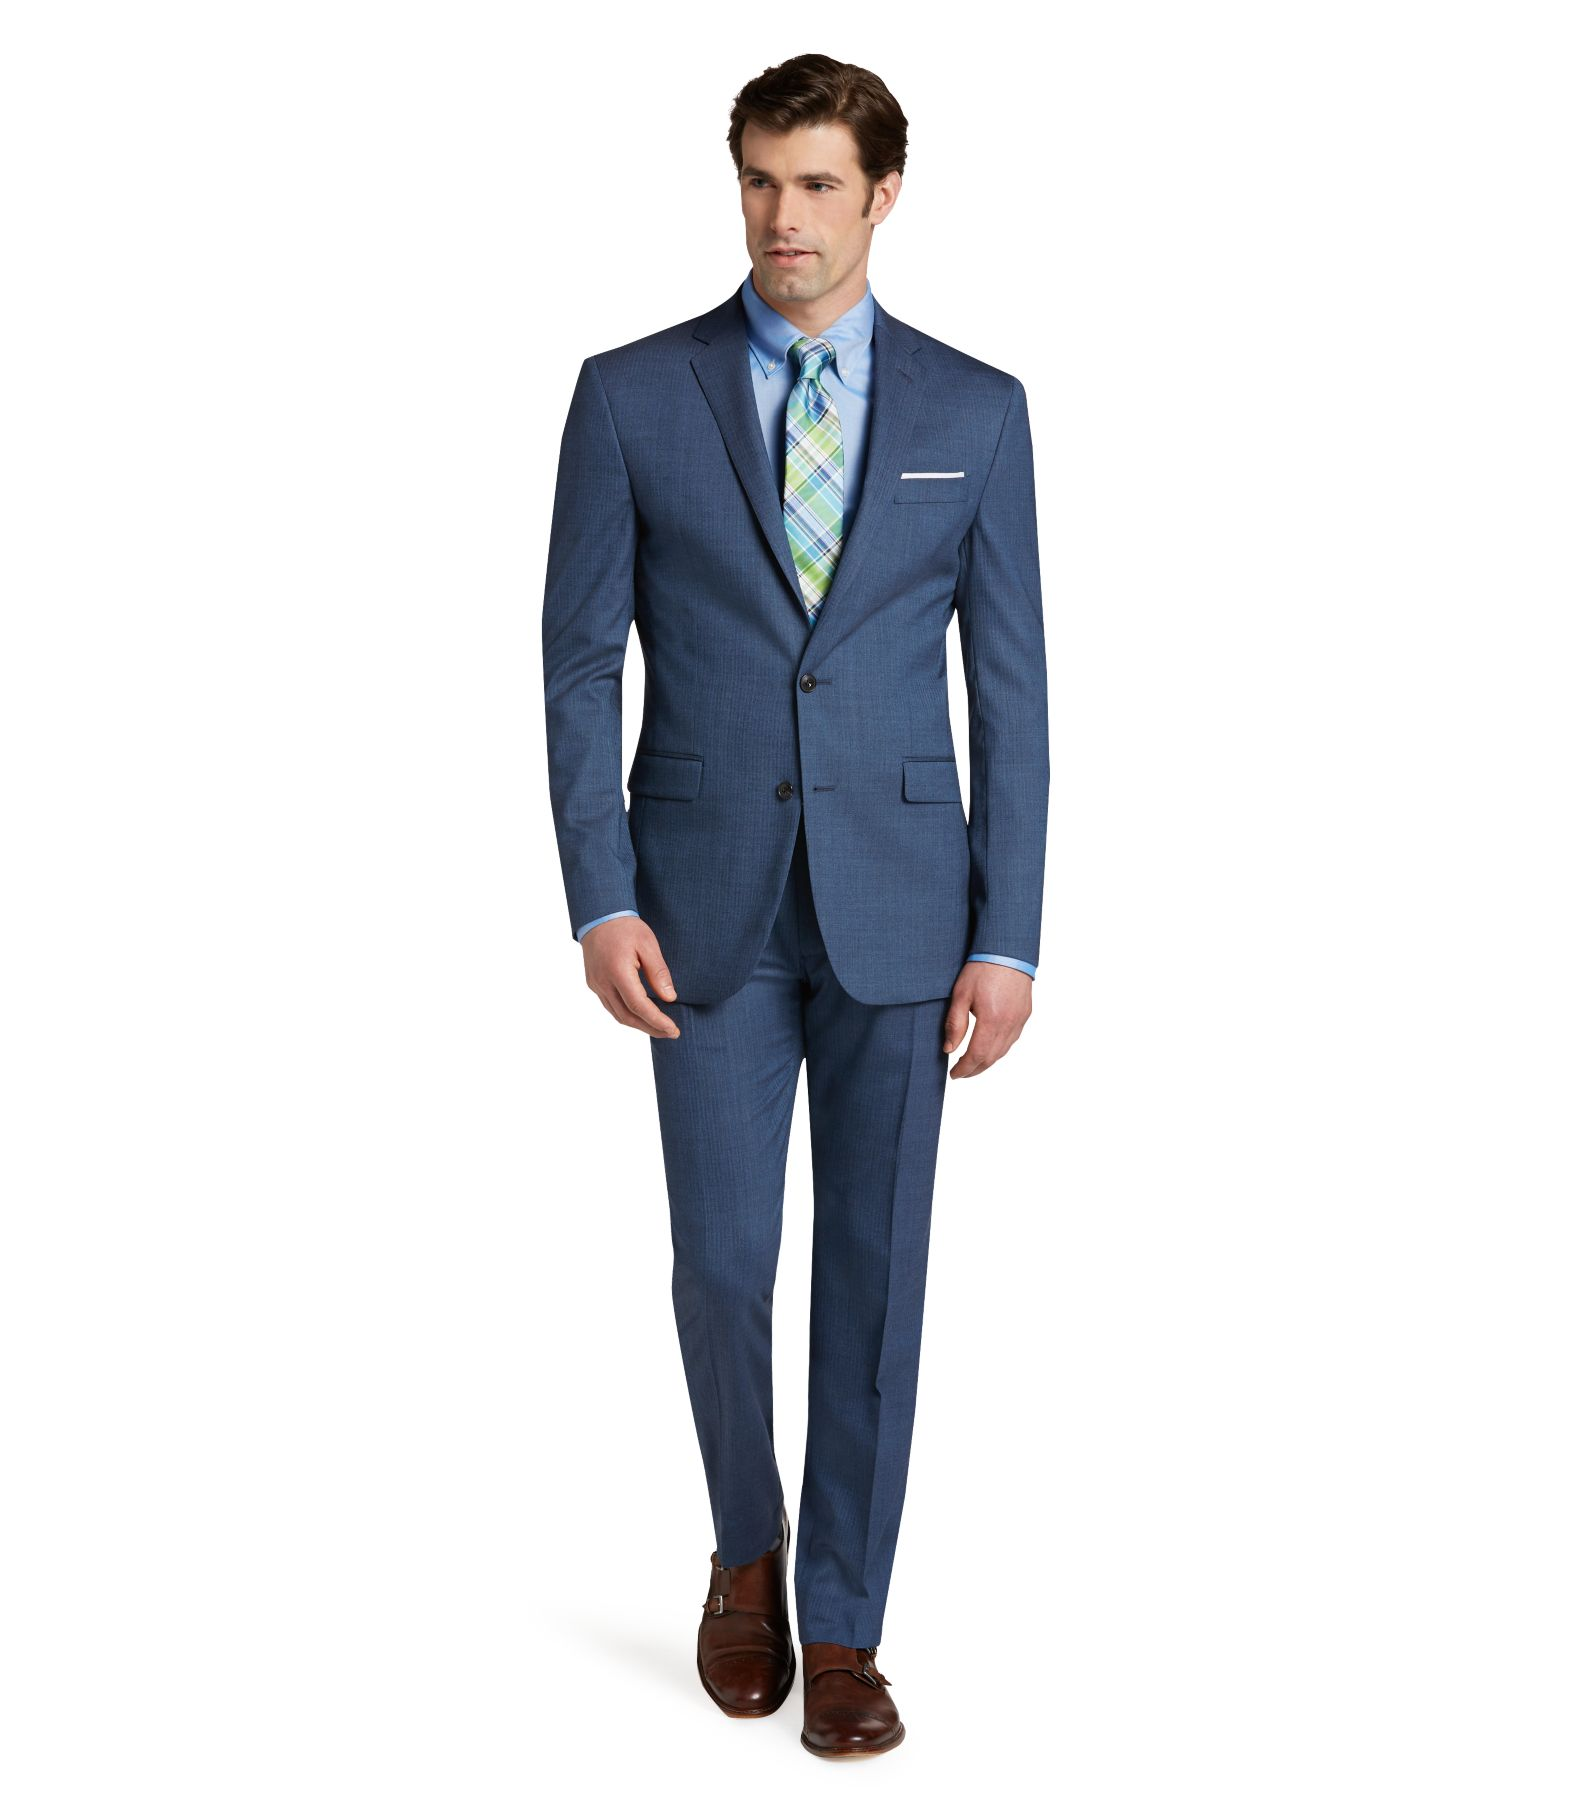 Slim Fit Suits Color Ideas Careyfashioncom